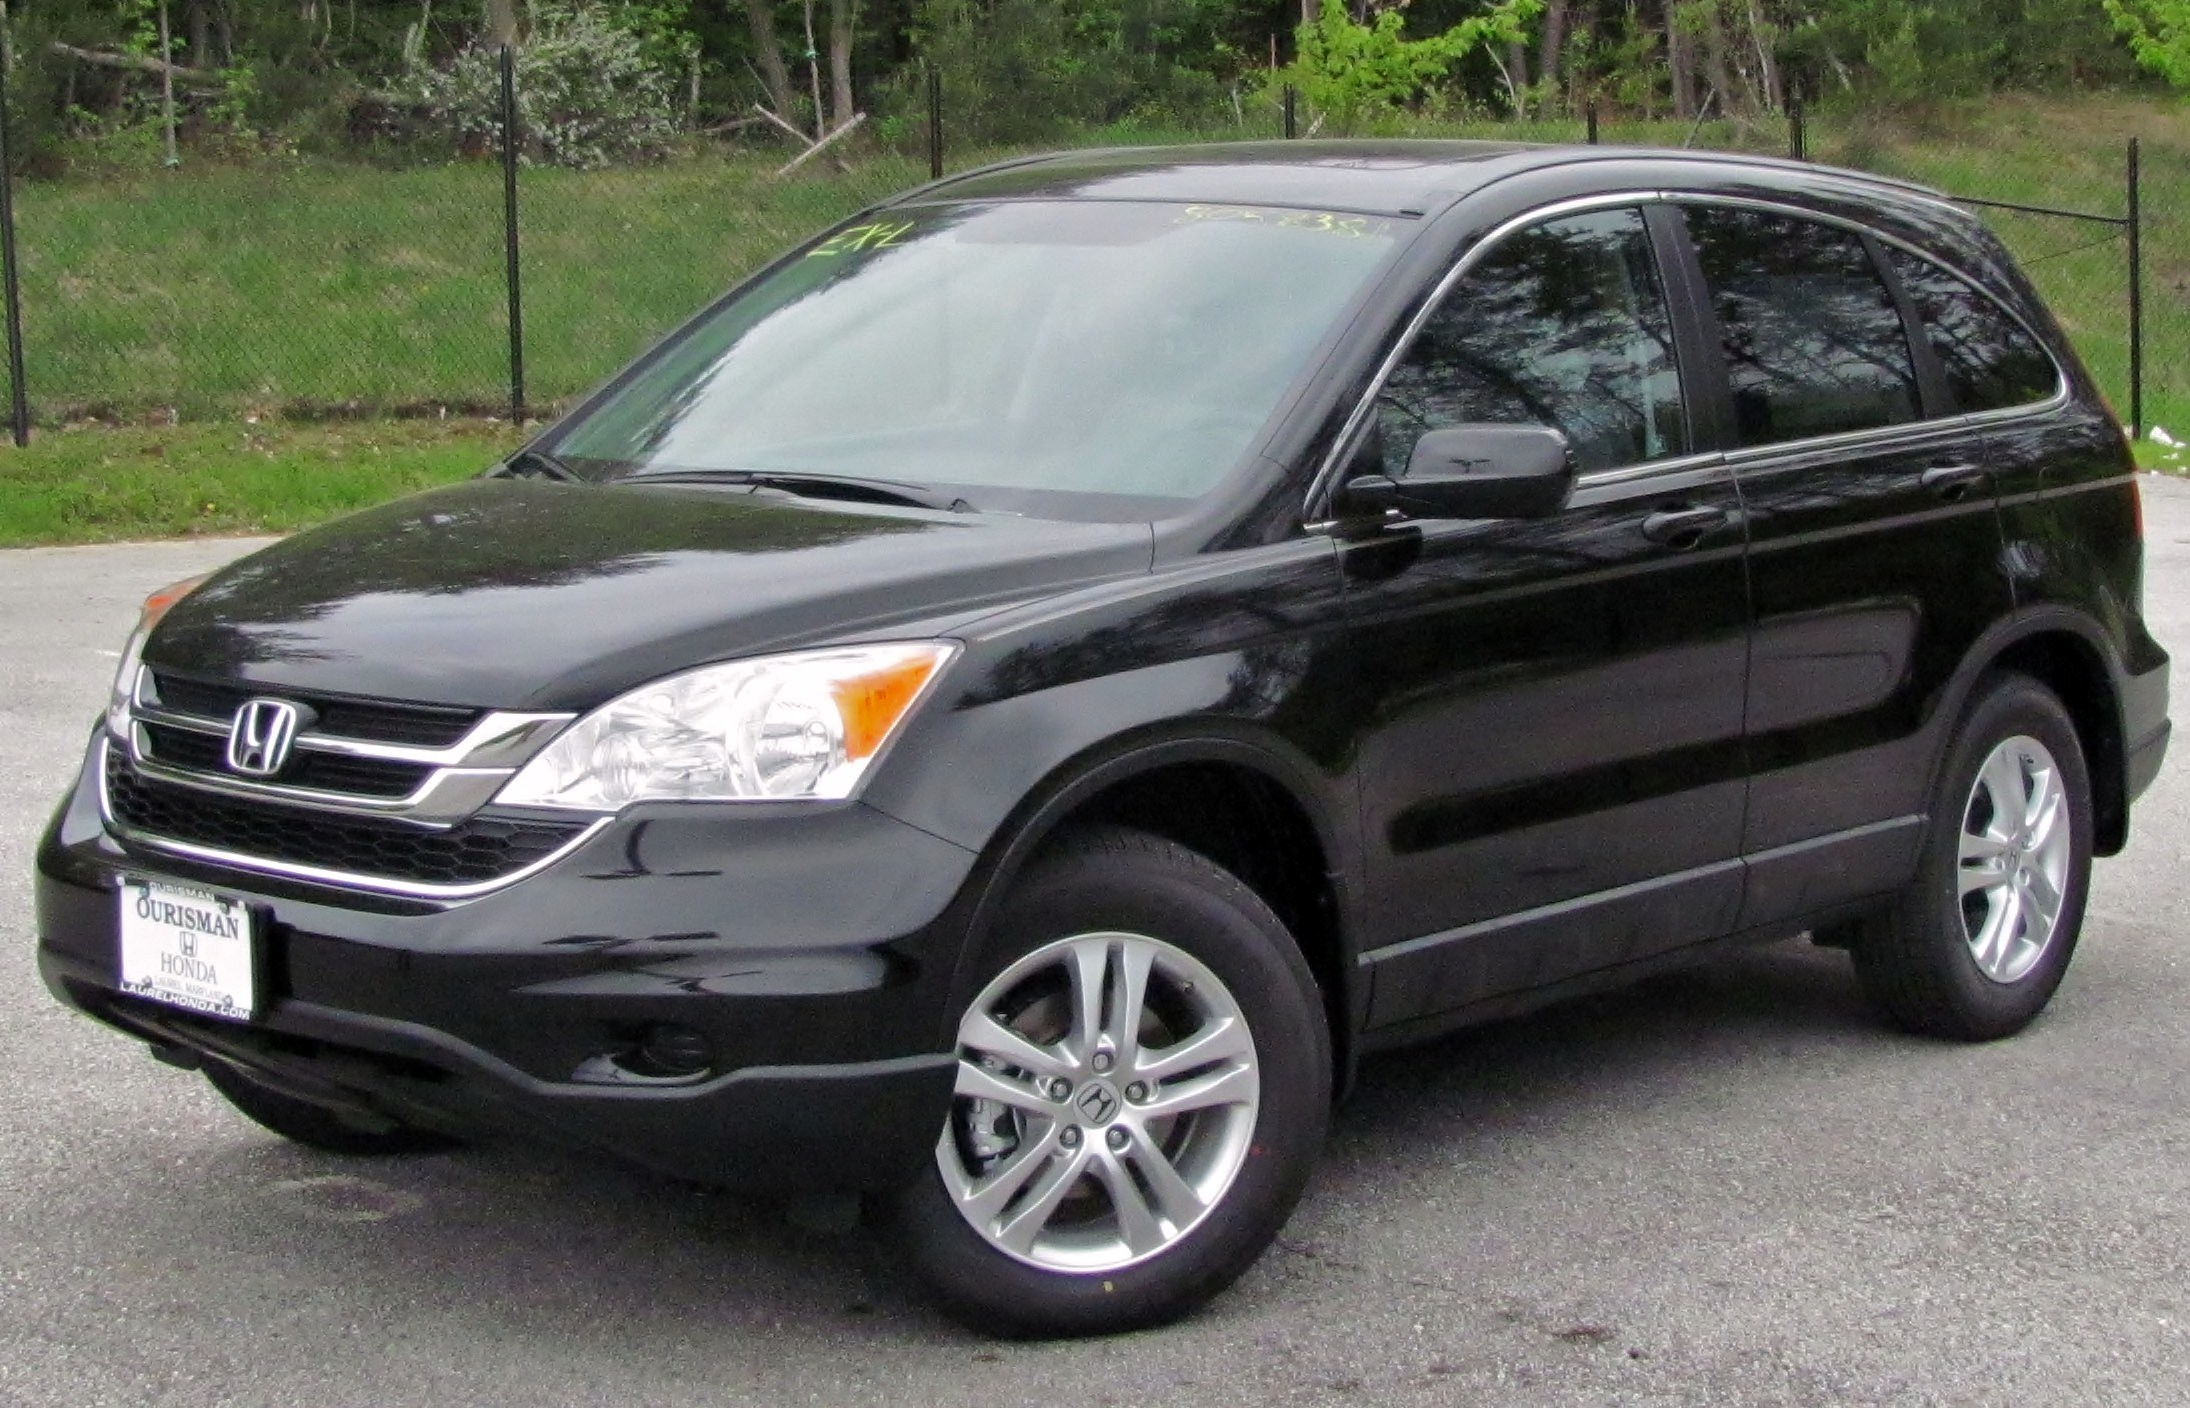 2009 Honda Cr-v iii (re5) - pictures, information and specs - Auto-Database.com